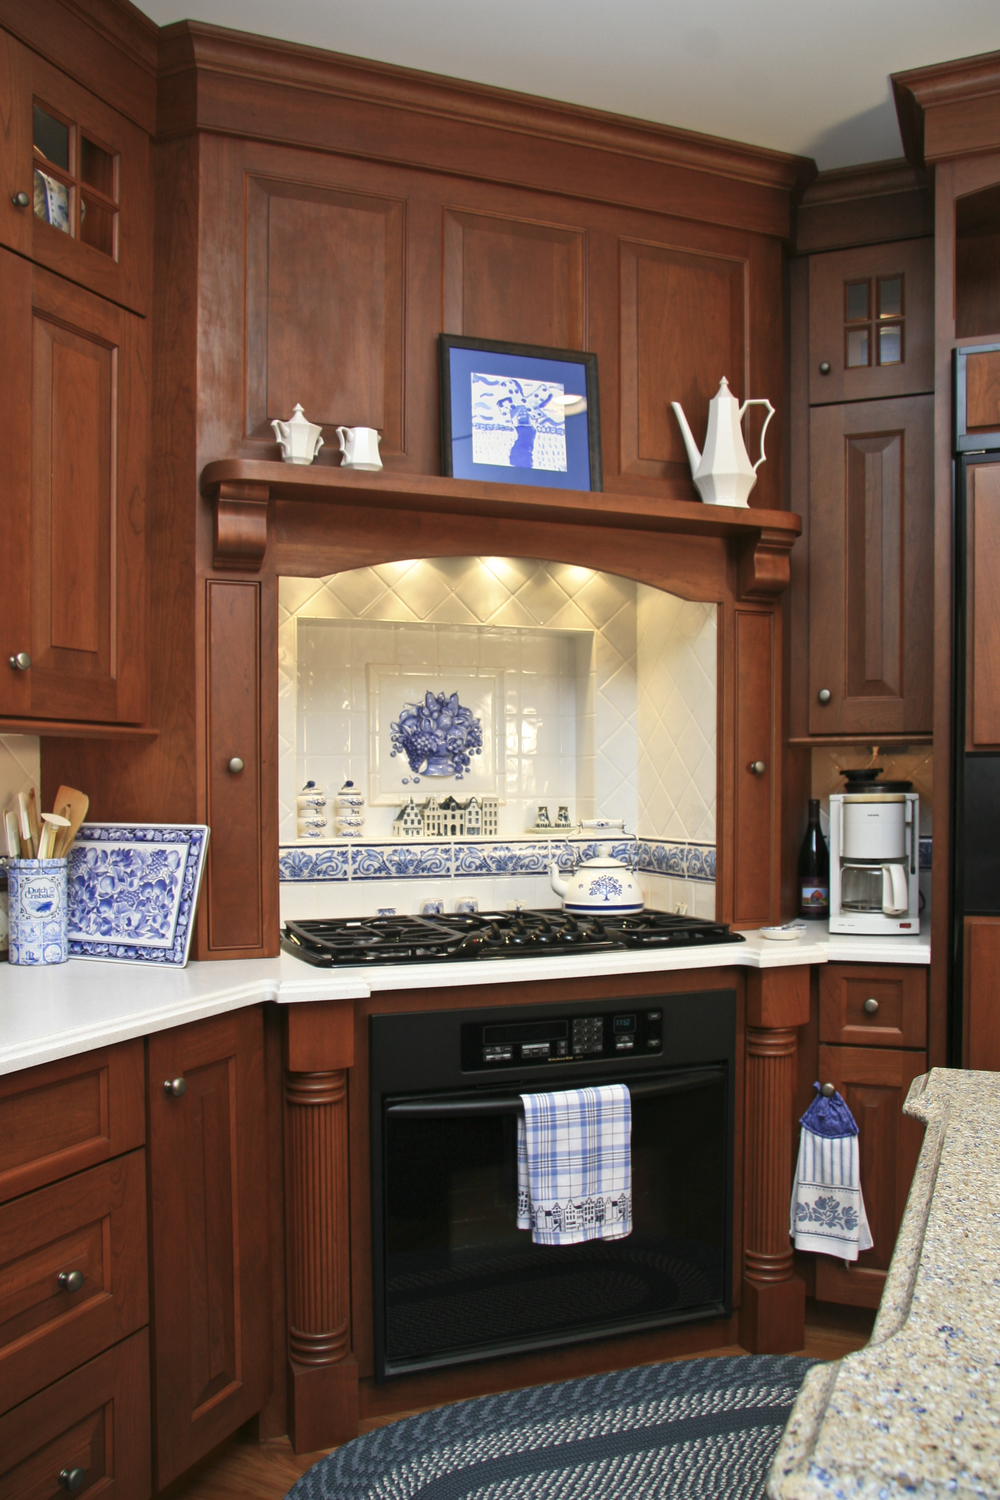 Kitchen_IMG_0182.jpg